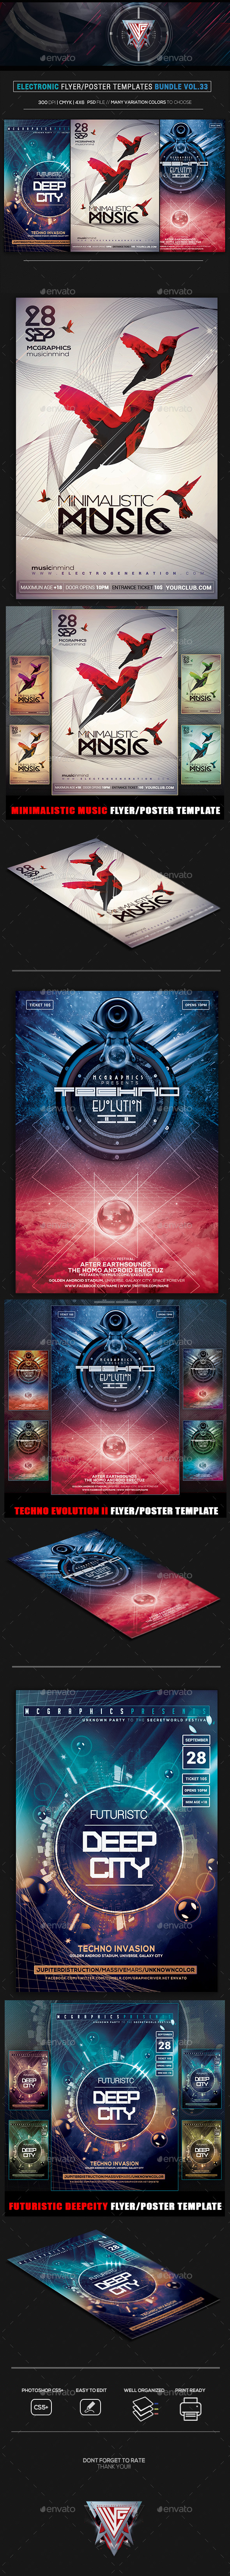 Electro Music Flyer Bundle Vol. 33 - Flyers Print Templates